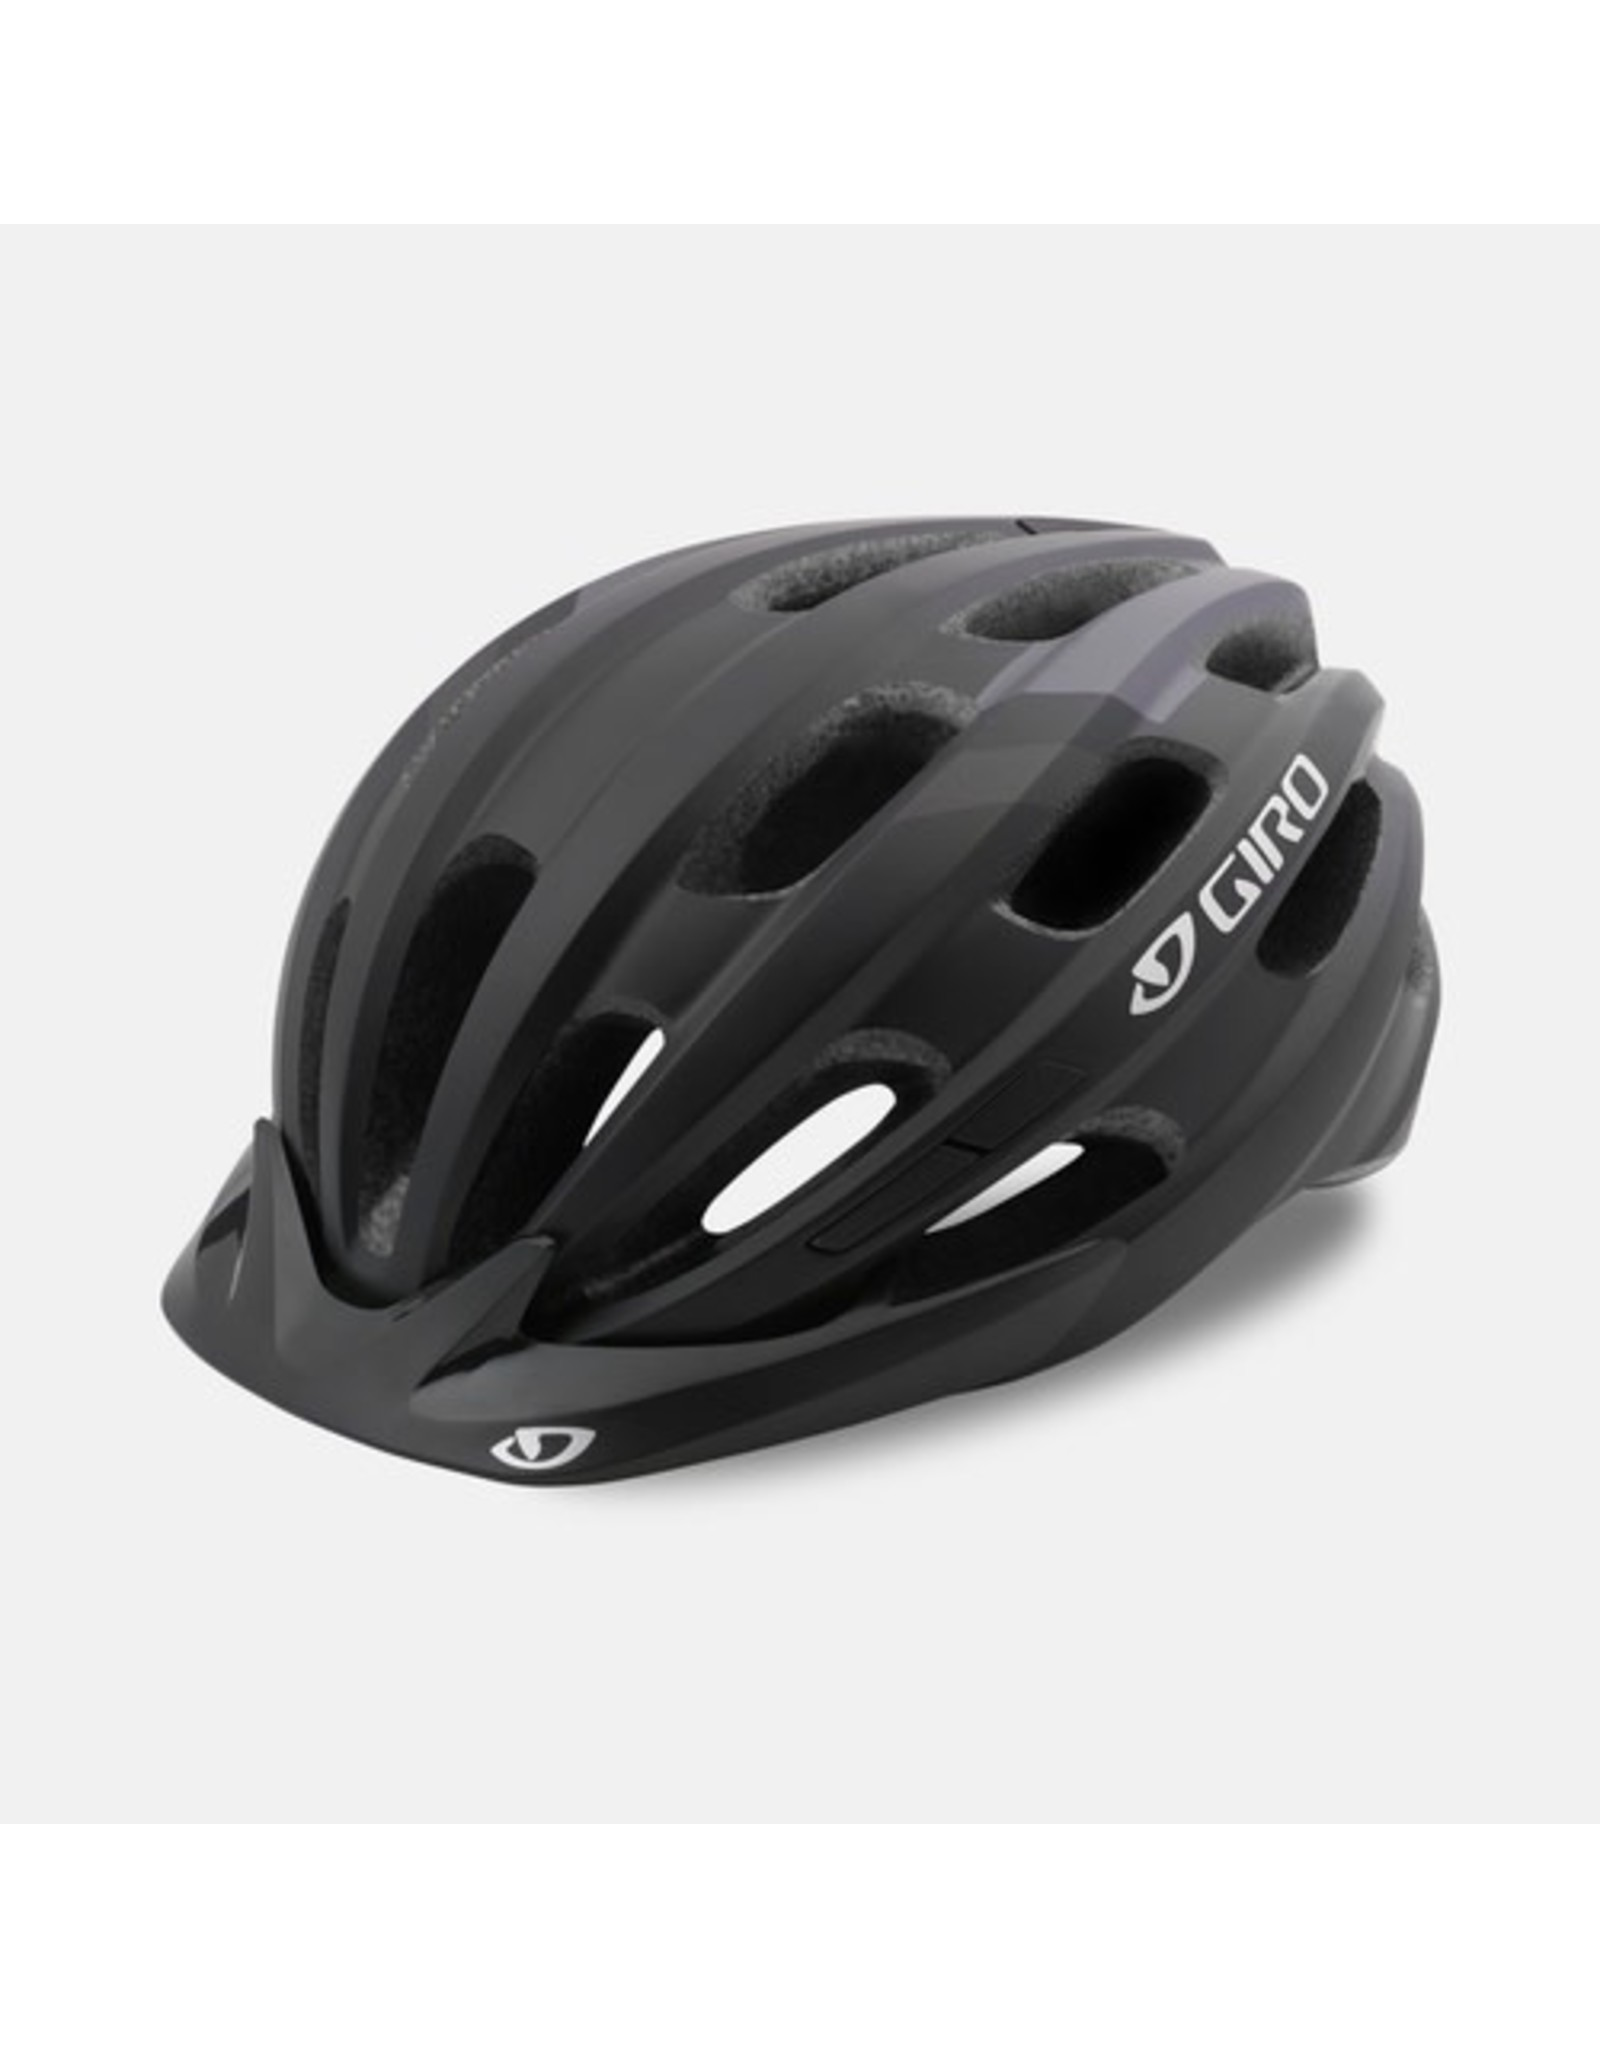 Giro Helmets GR Register MIPS XL MAT BLK UXL 18 US